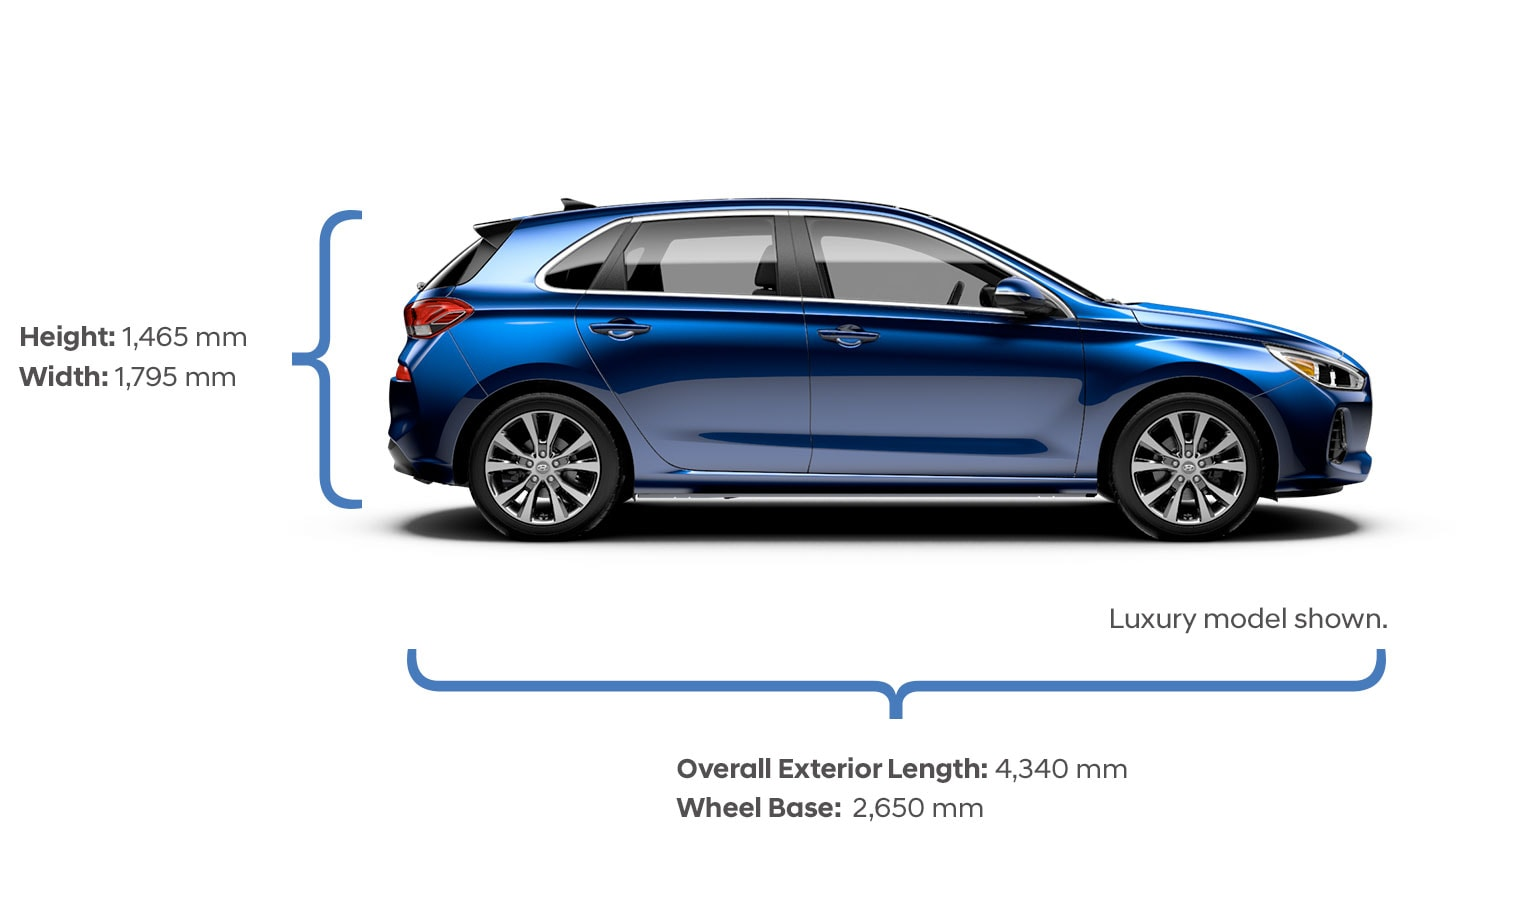 Height and width specifications of the 2020 Elantra GT